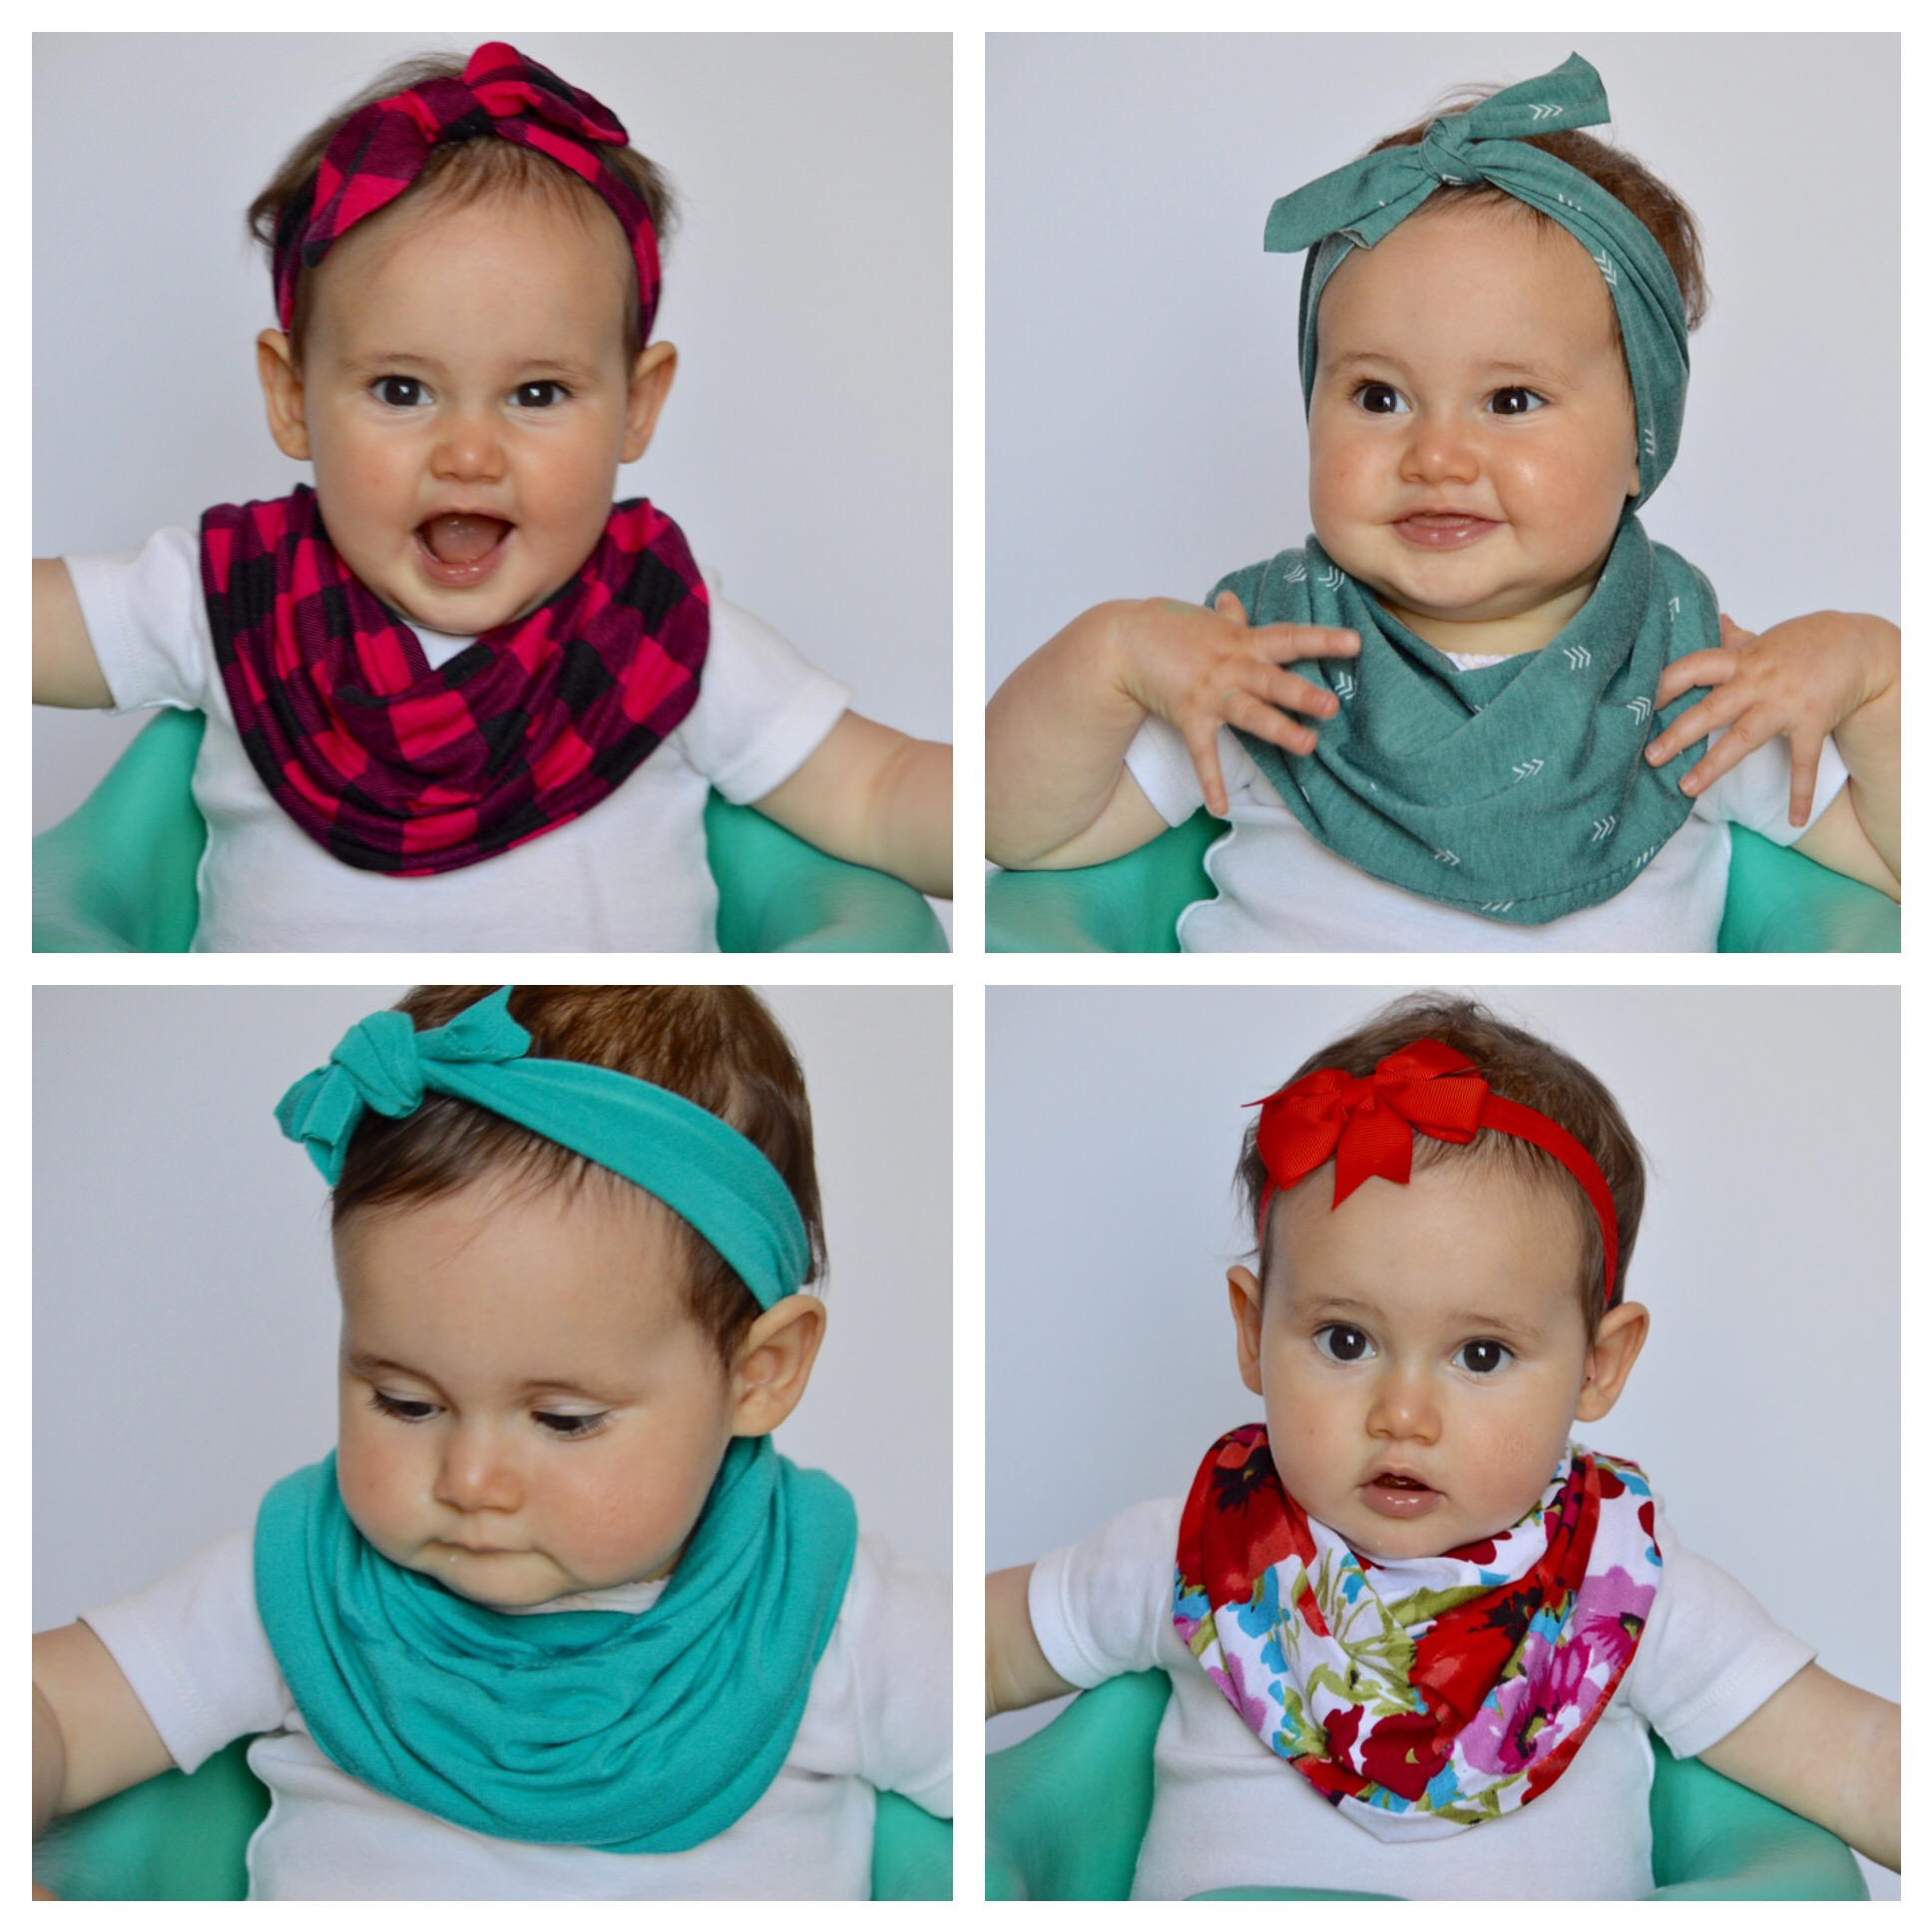 ELBE baby - click on the photo to visit the shop